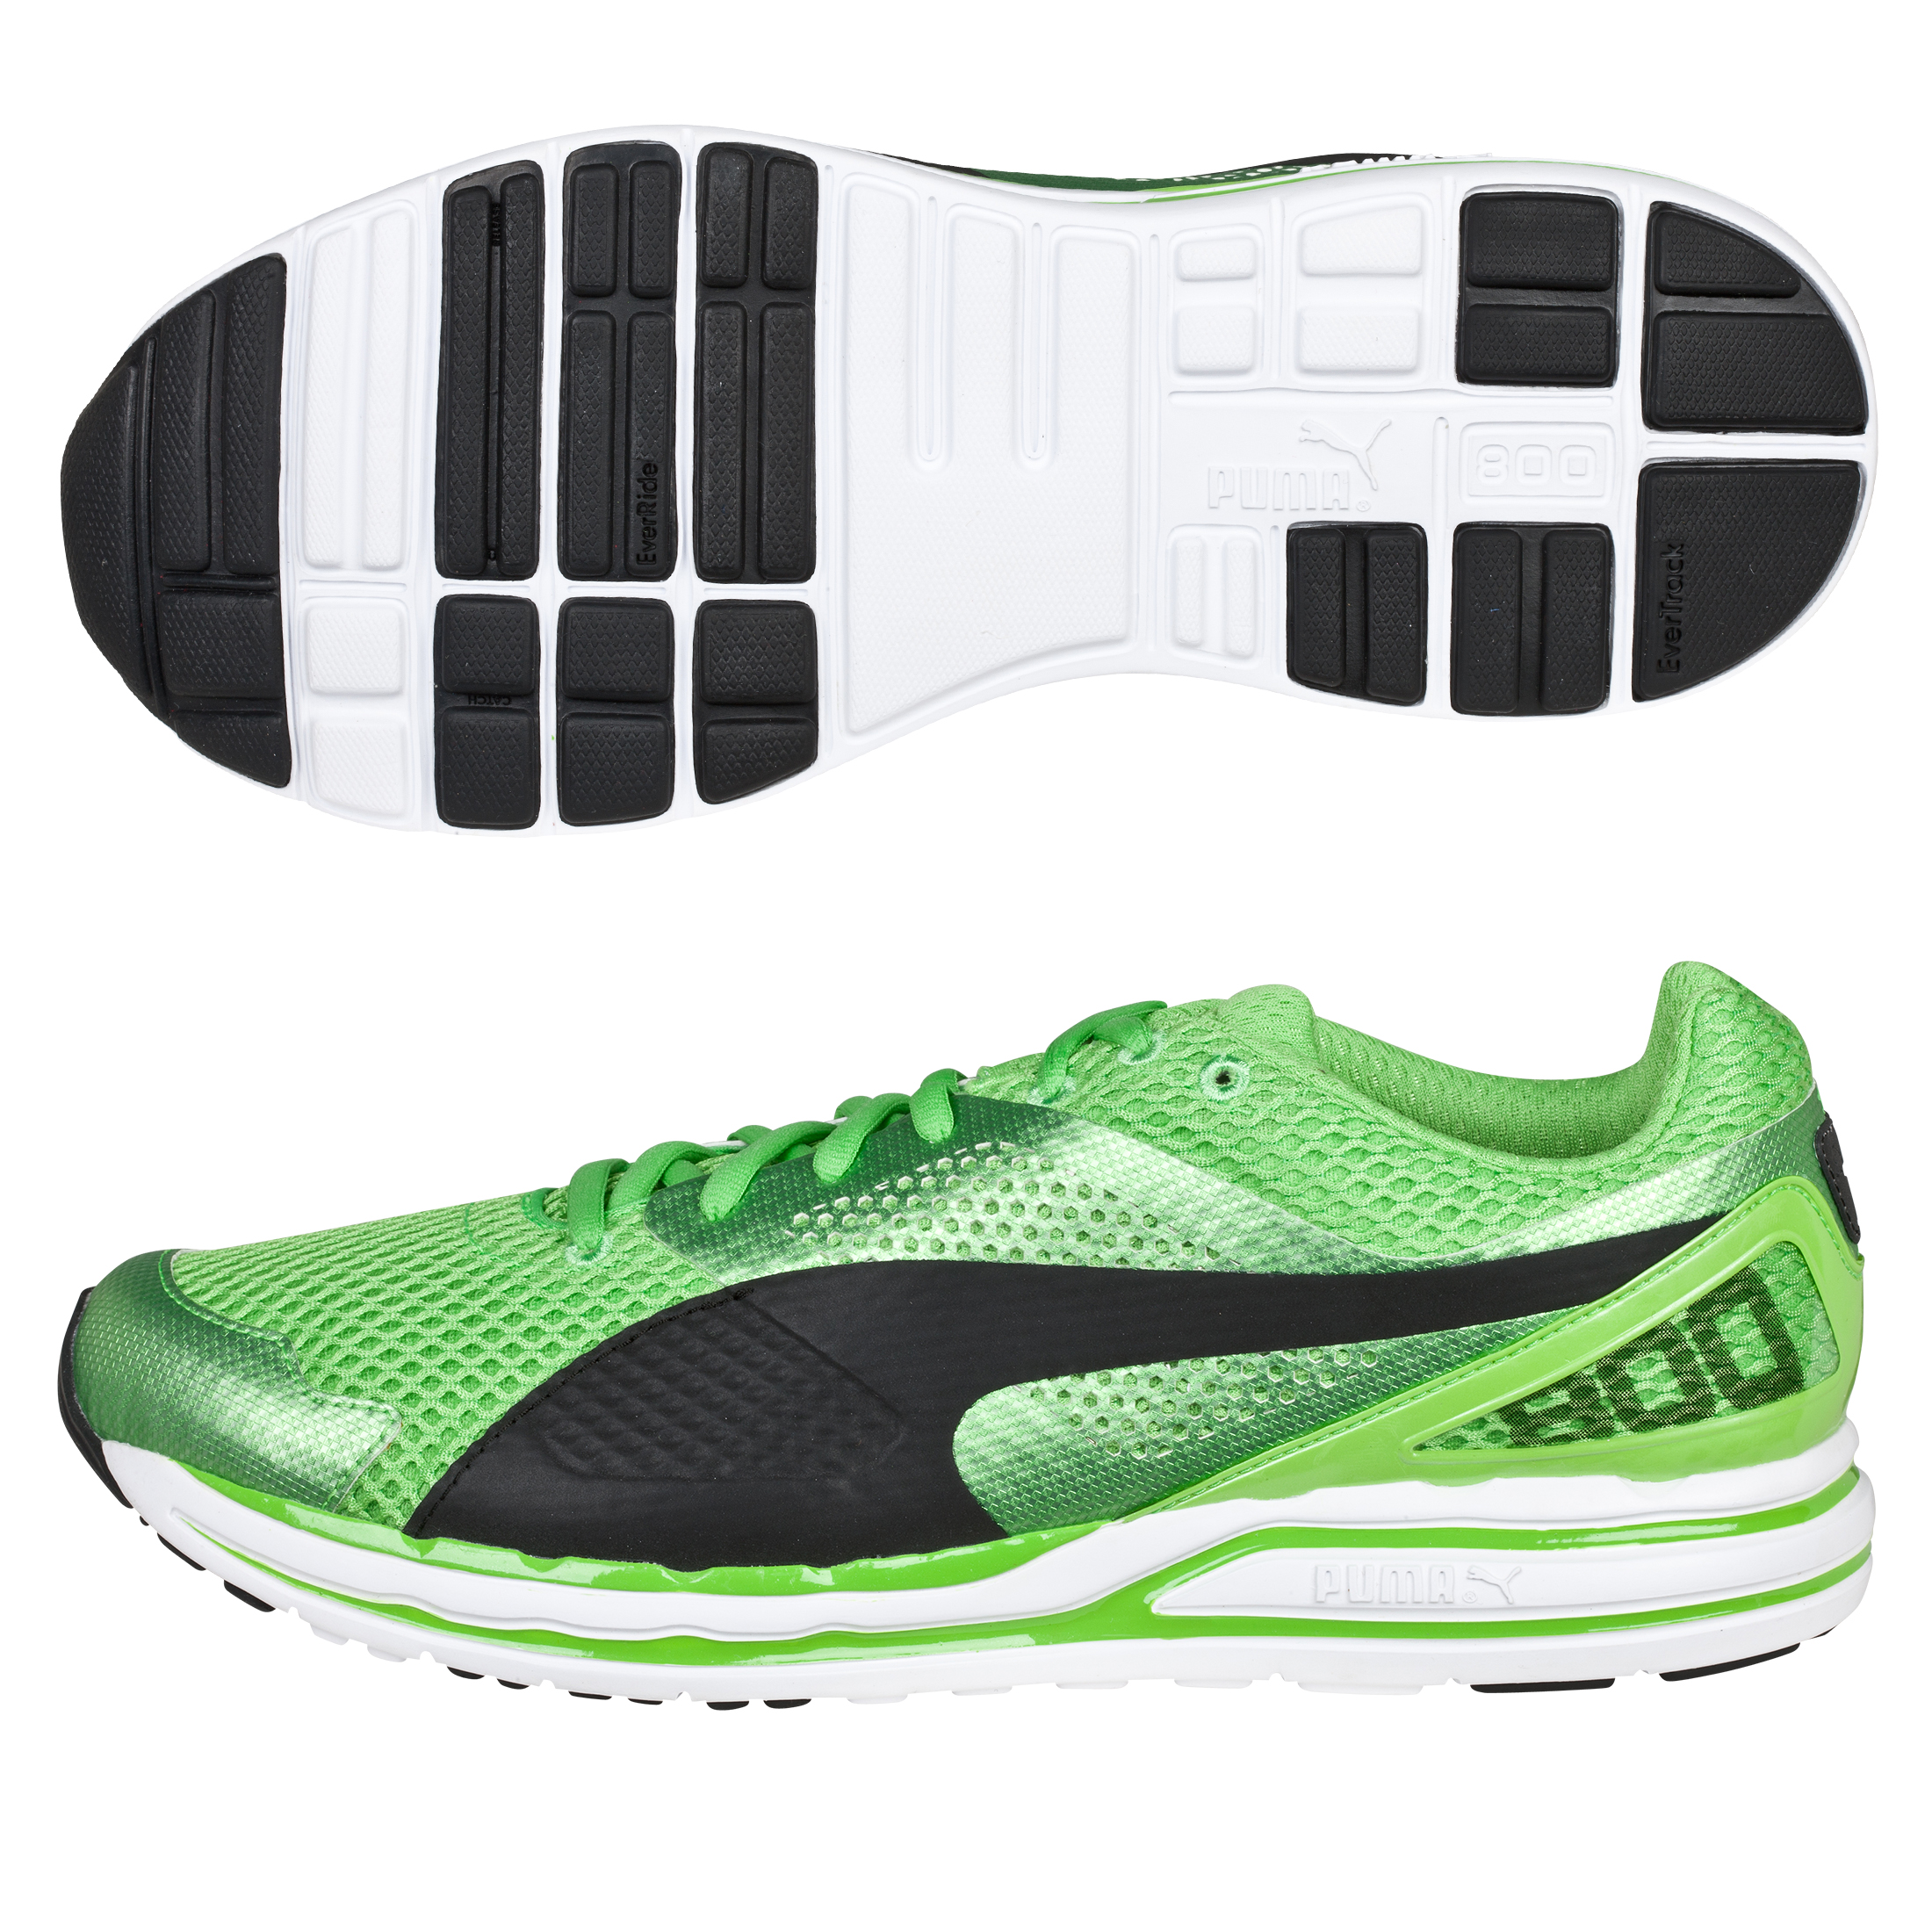 Puma Faas 800 S - Jasmine Green/Black White